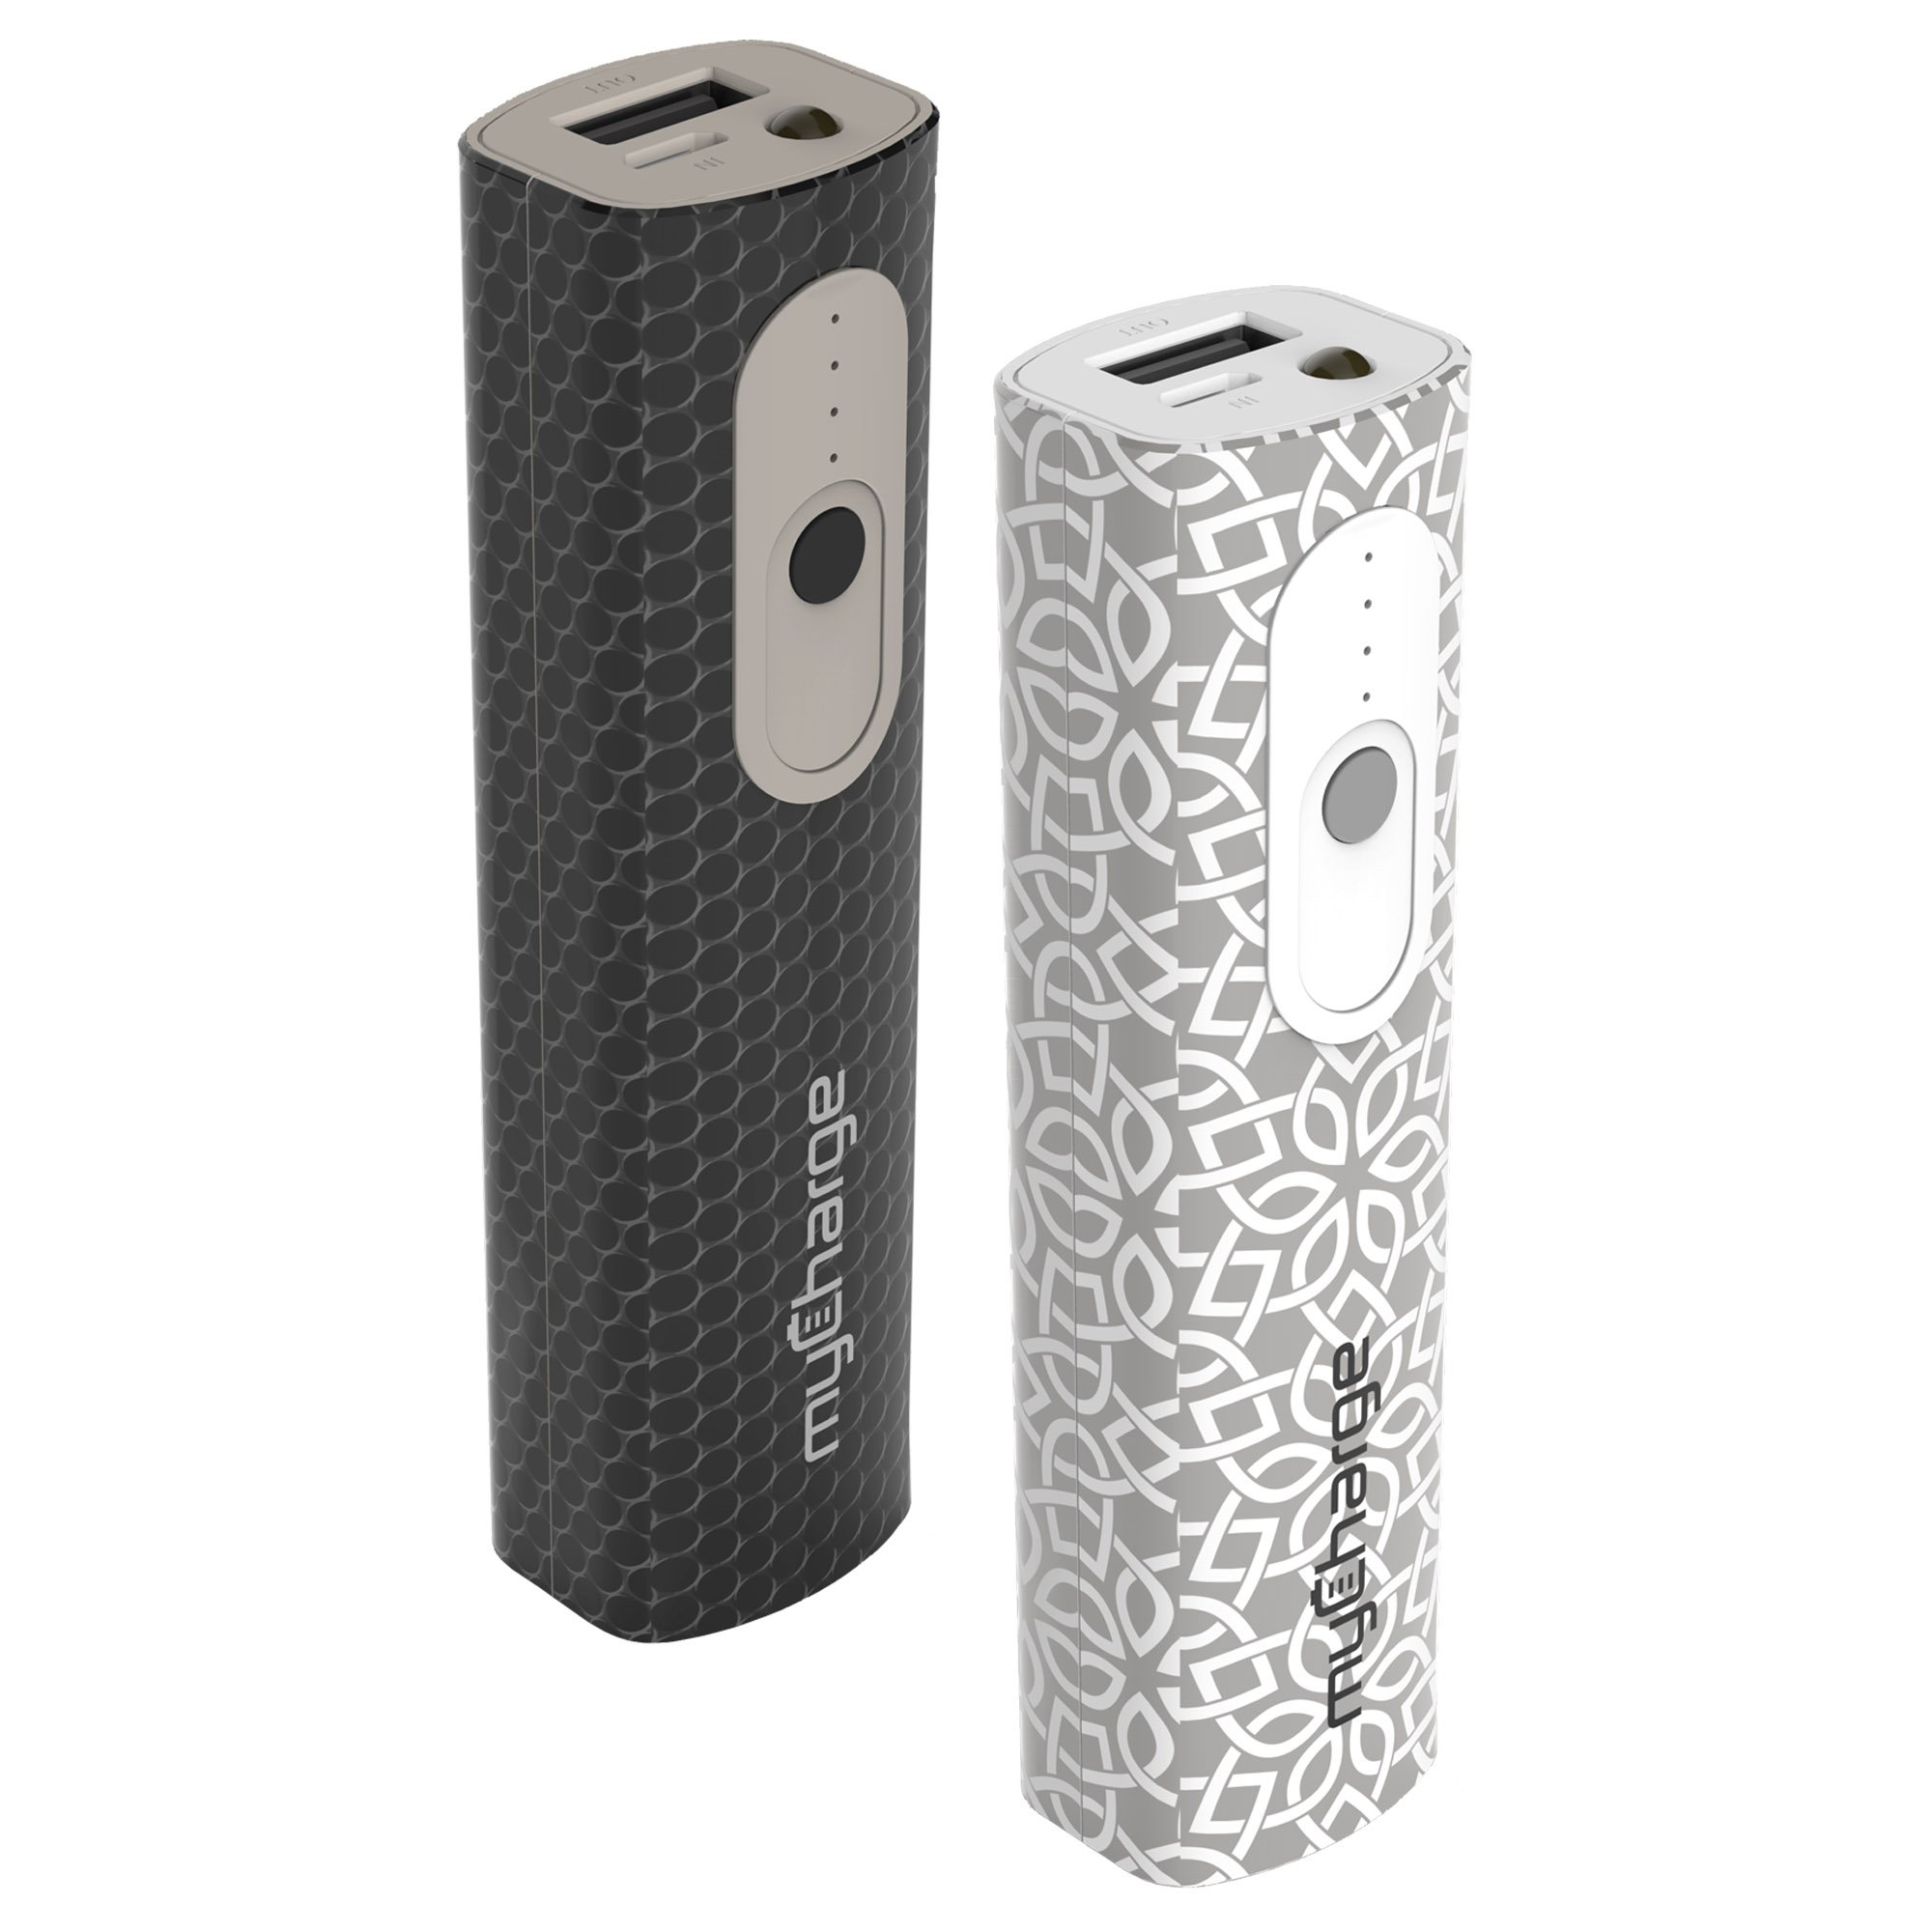 myCharge Go Style Portable Charger 2600mAh External Battery Pack for Smartphone, Tablet and Other USB Devices (iPhone, iPad, Samsung Galaxy) - Grey/White or Black Pattern (Sold as Assorted) by myCharge